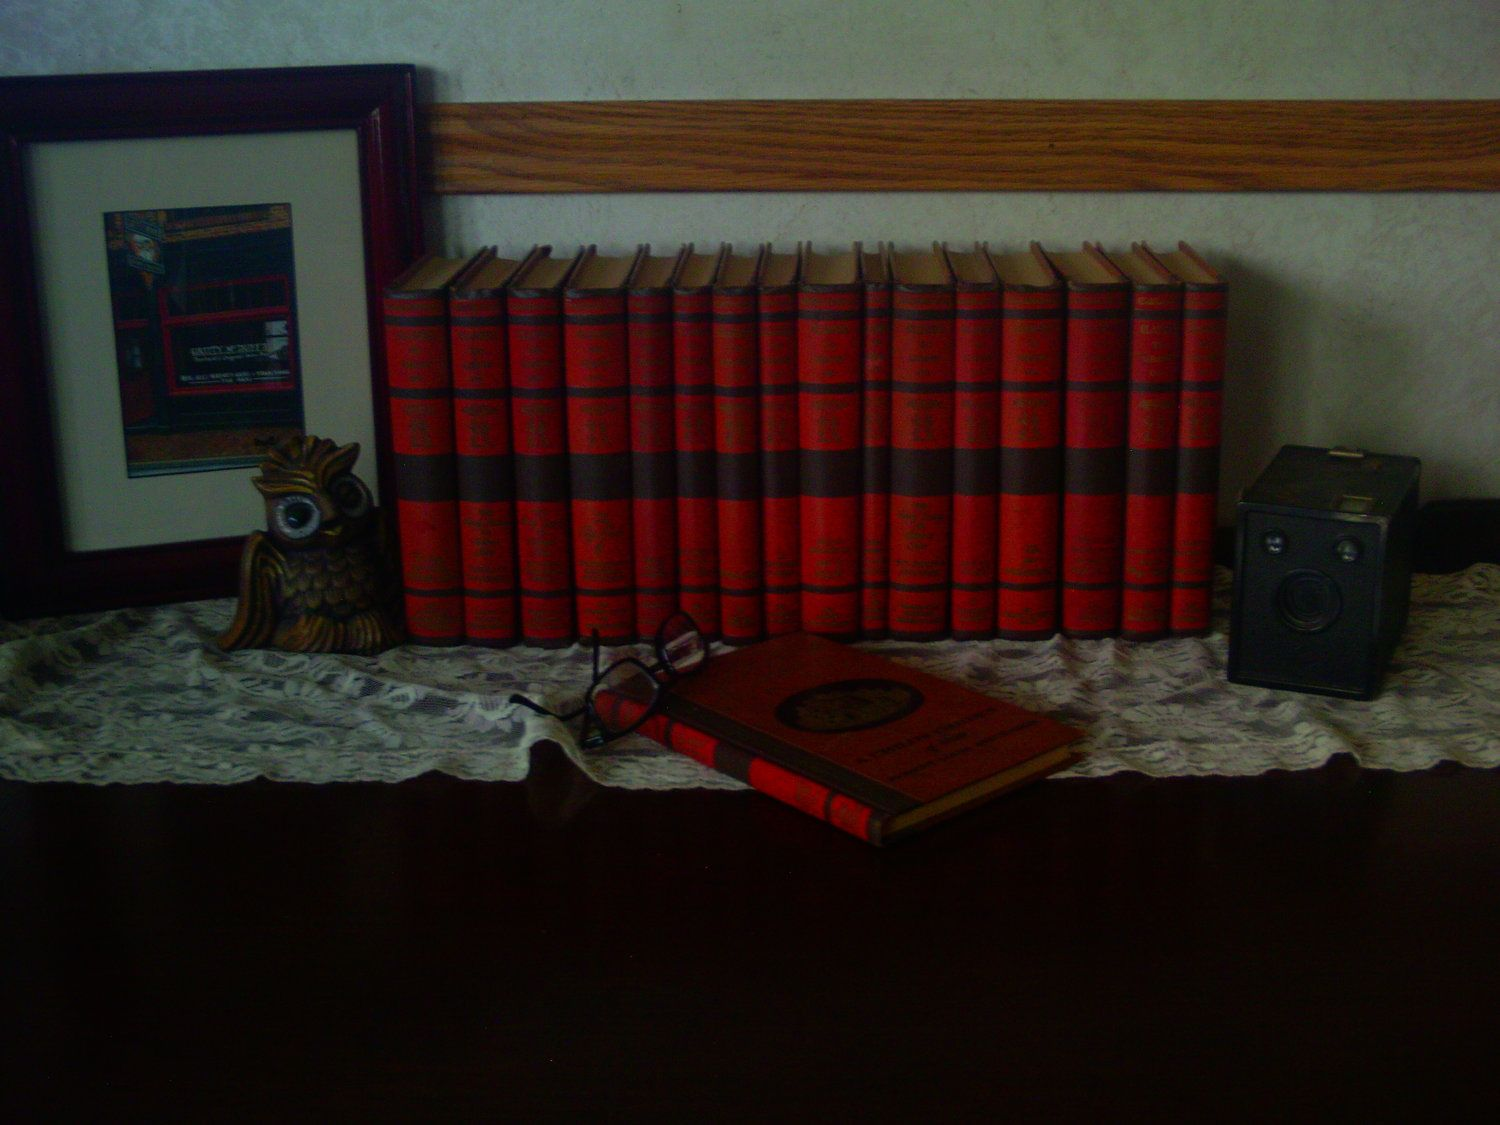 Book Collection-Books-Classic Books-Classics-Instant Library-Collection-Library Filler-Vintage Books-Photo Props-Vintage Book Sets. $65.00, via Etsy.